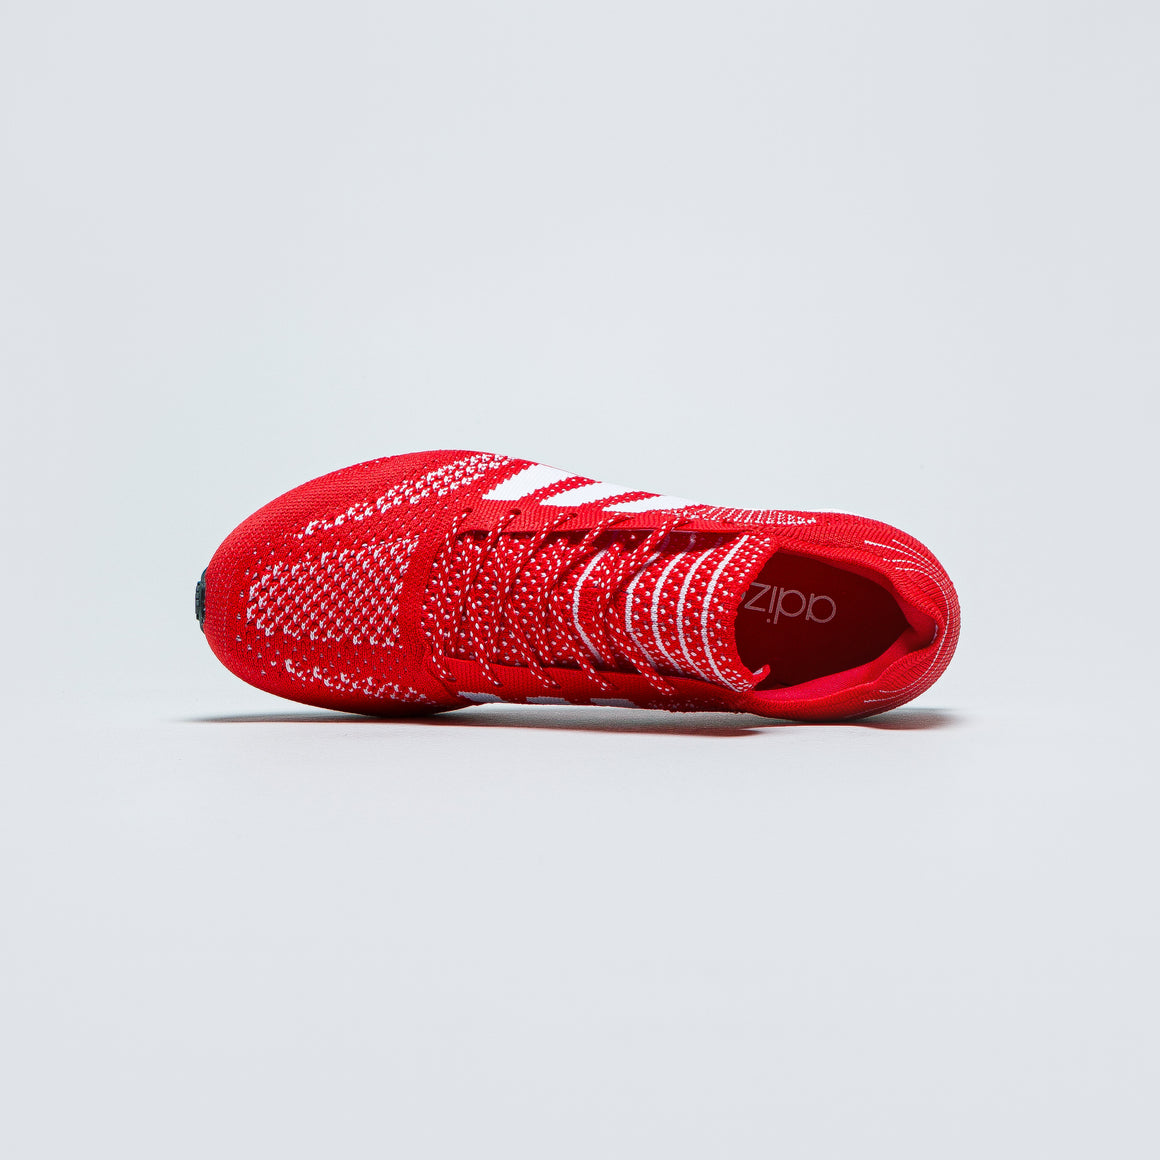 adidas - AdiZero Prime - Active Red/Cloud White - Up There